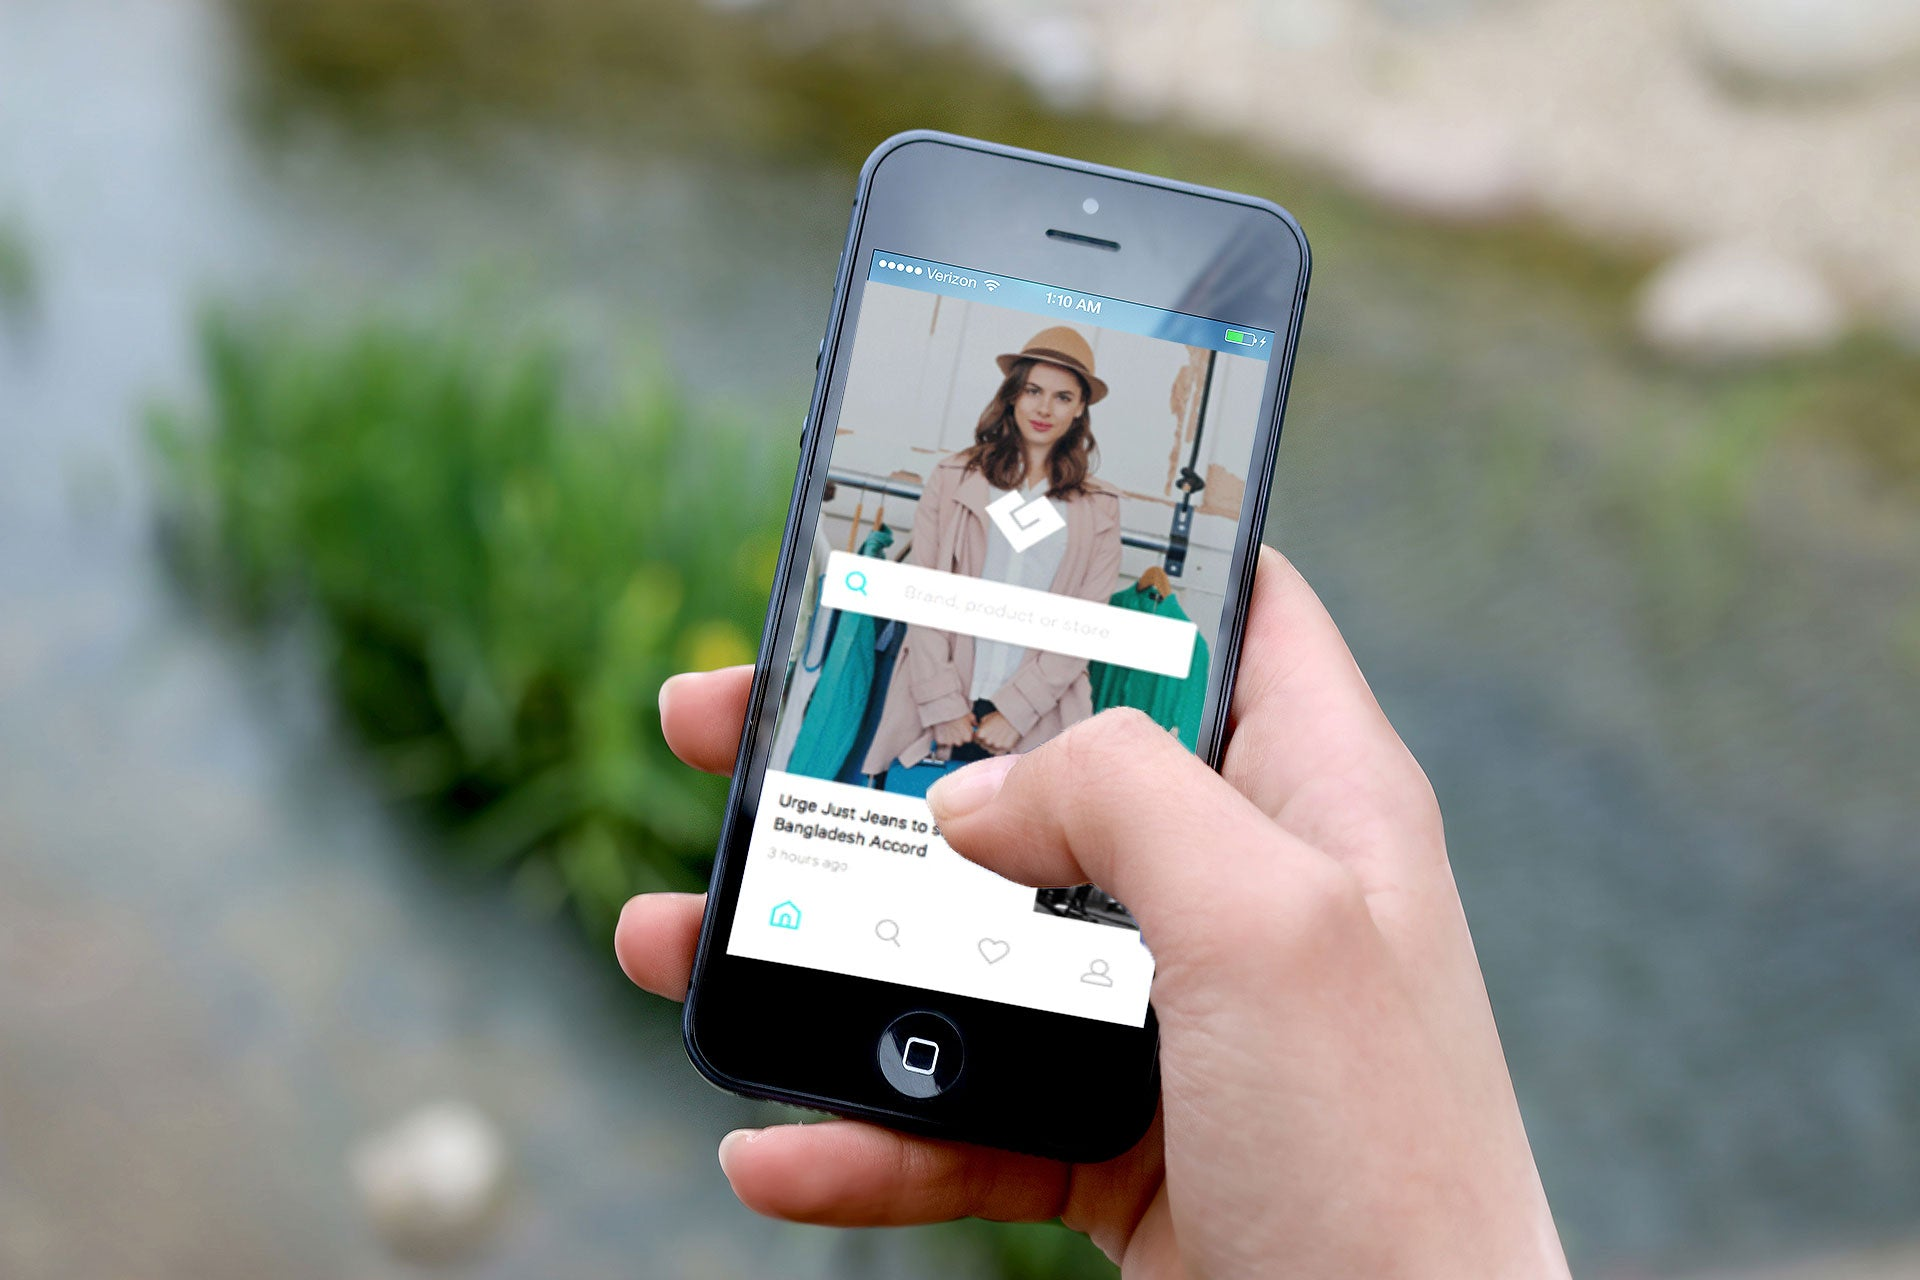 Discover ethical brands using the Good On You mobile app